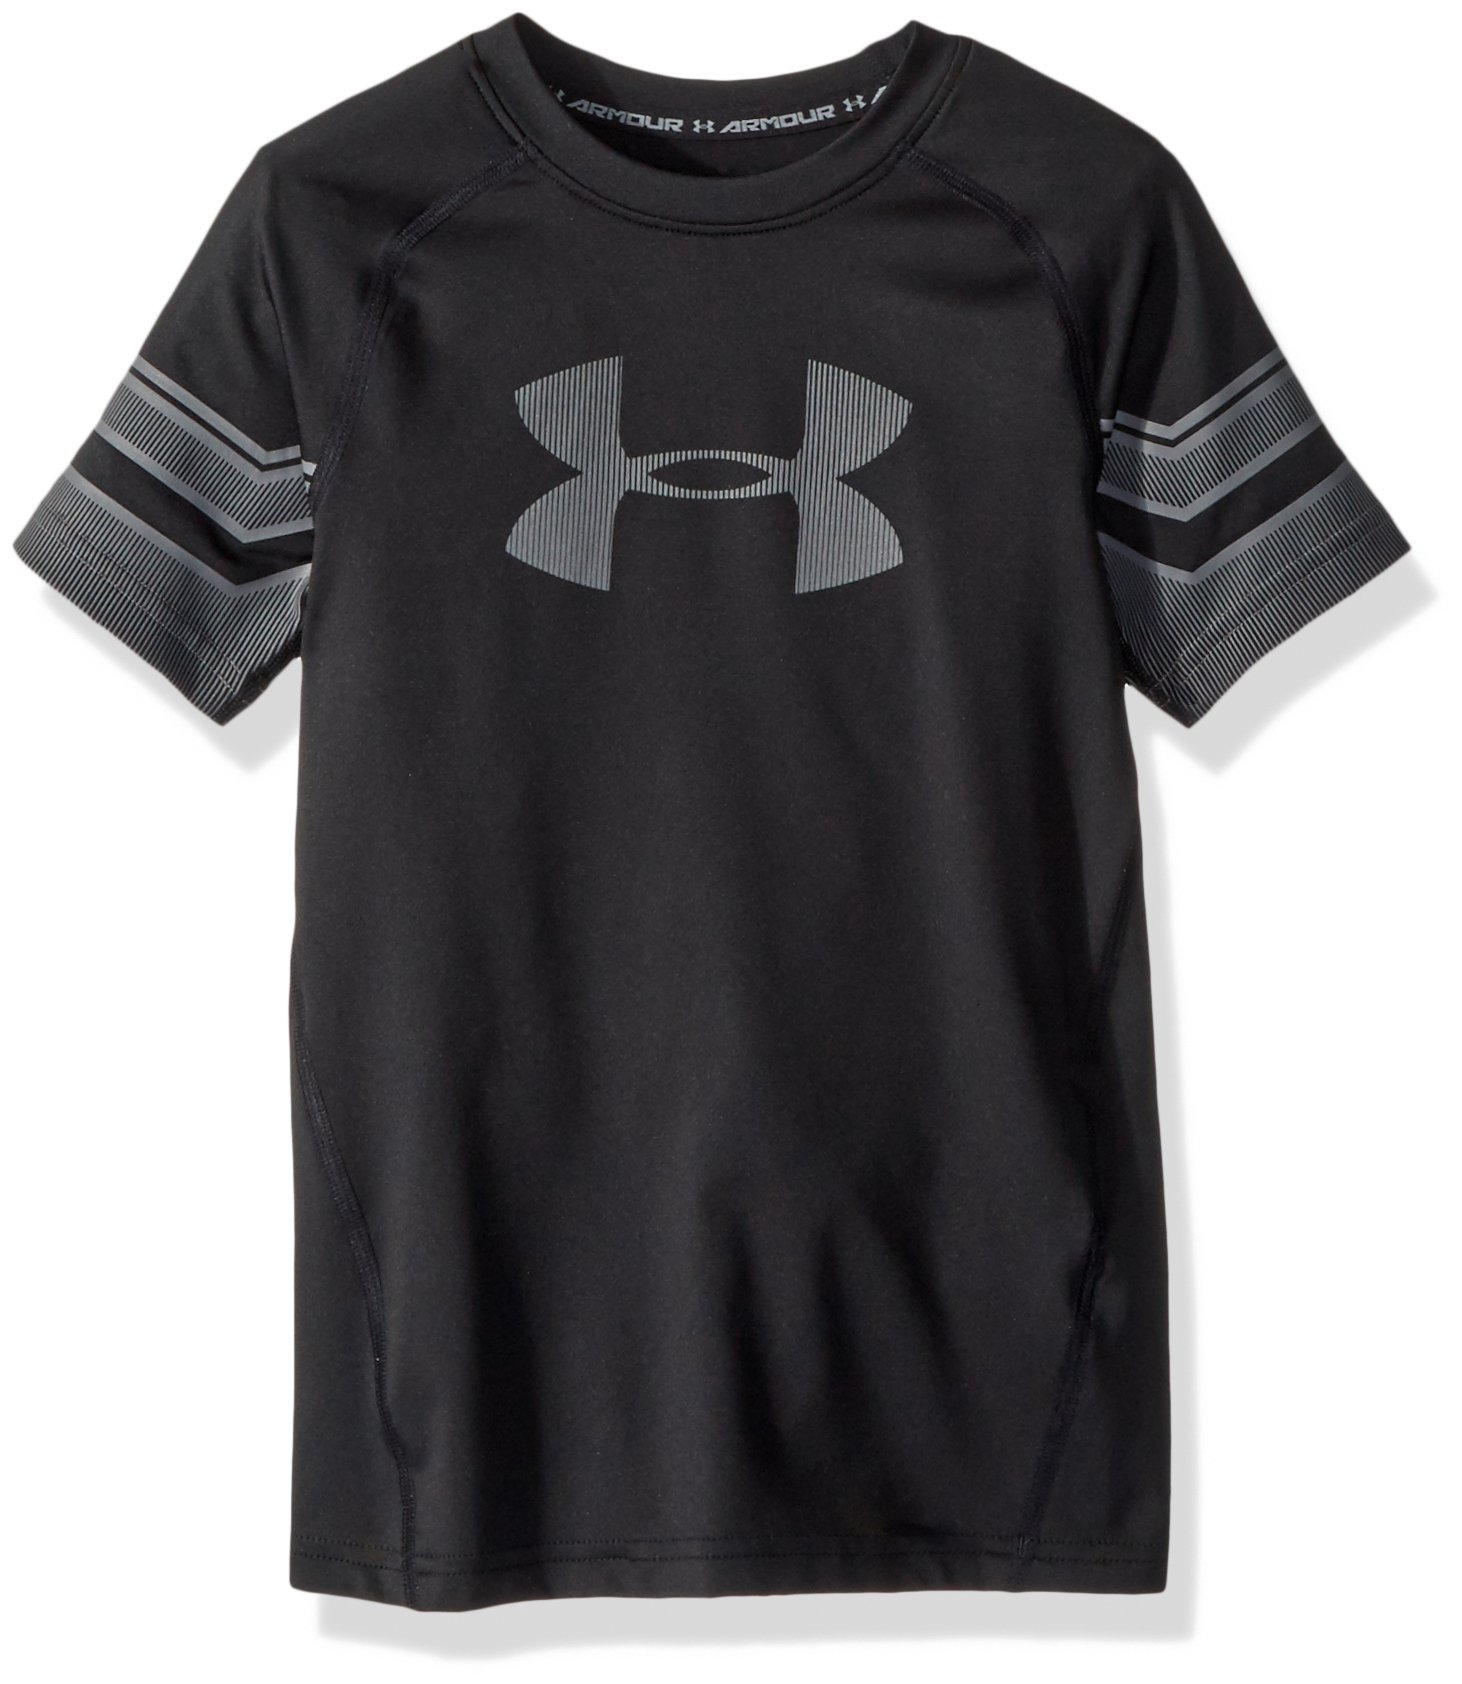 Under Armour Boys Graphic Short sleeve, Black/Graphite, Youth Large